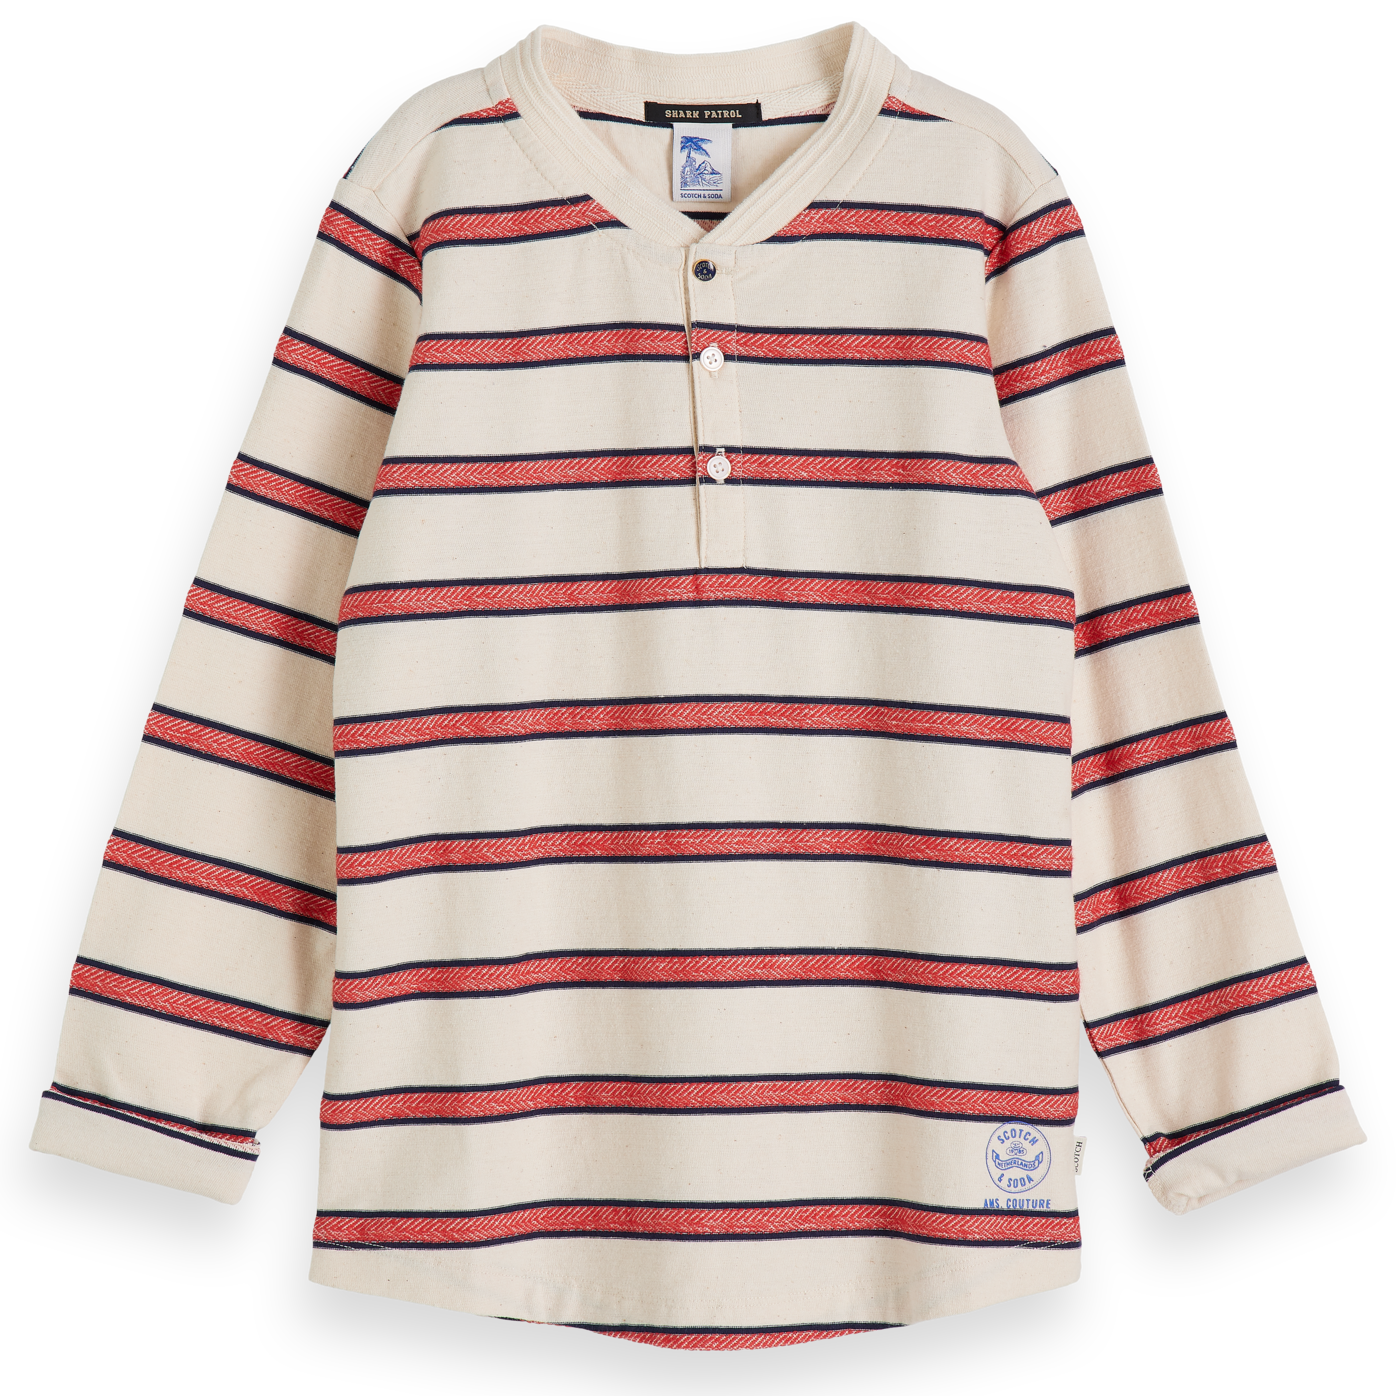 yoya, kids, boys, scotch shrunk, summer, lightweight, long-sleeved, henley shirt